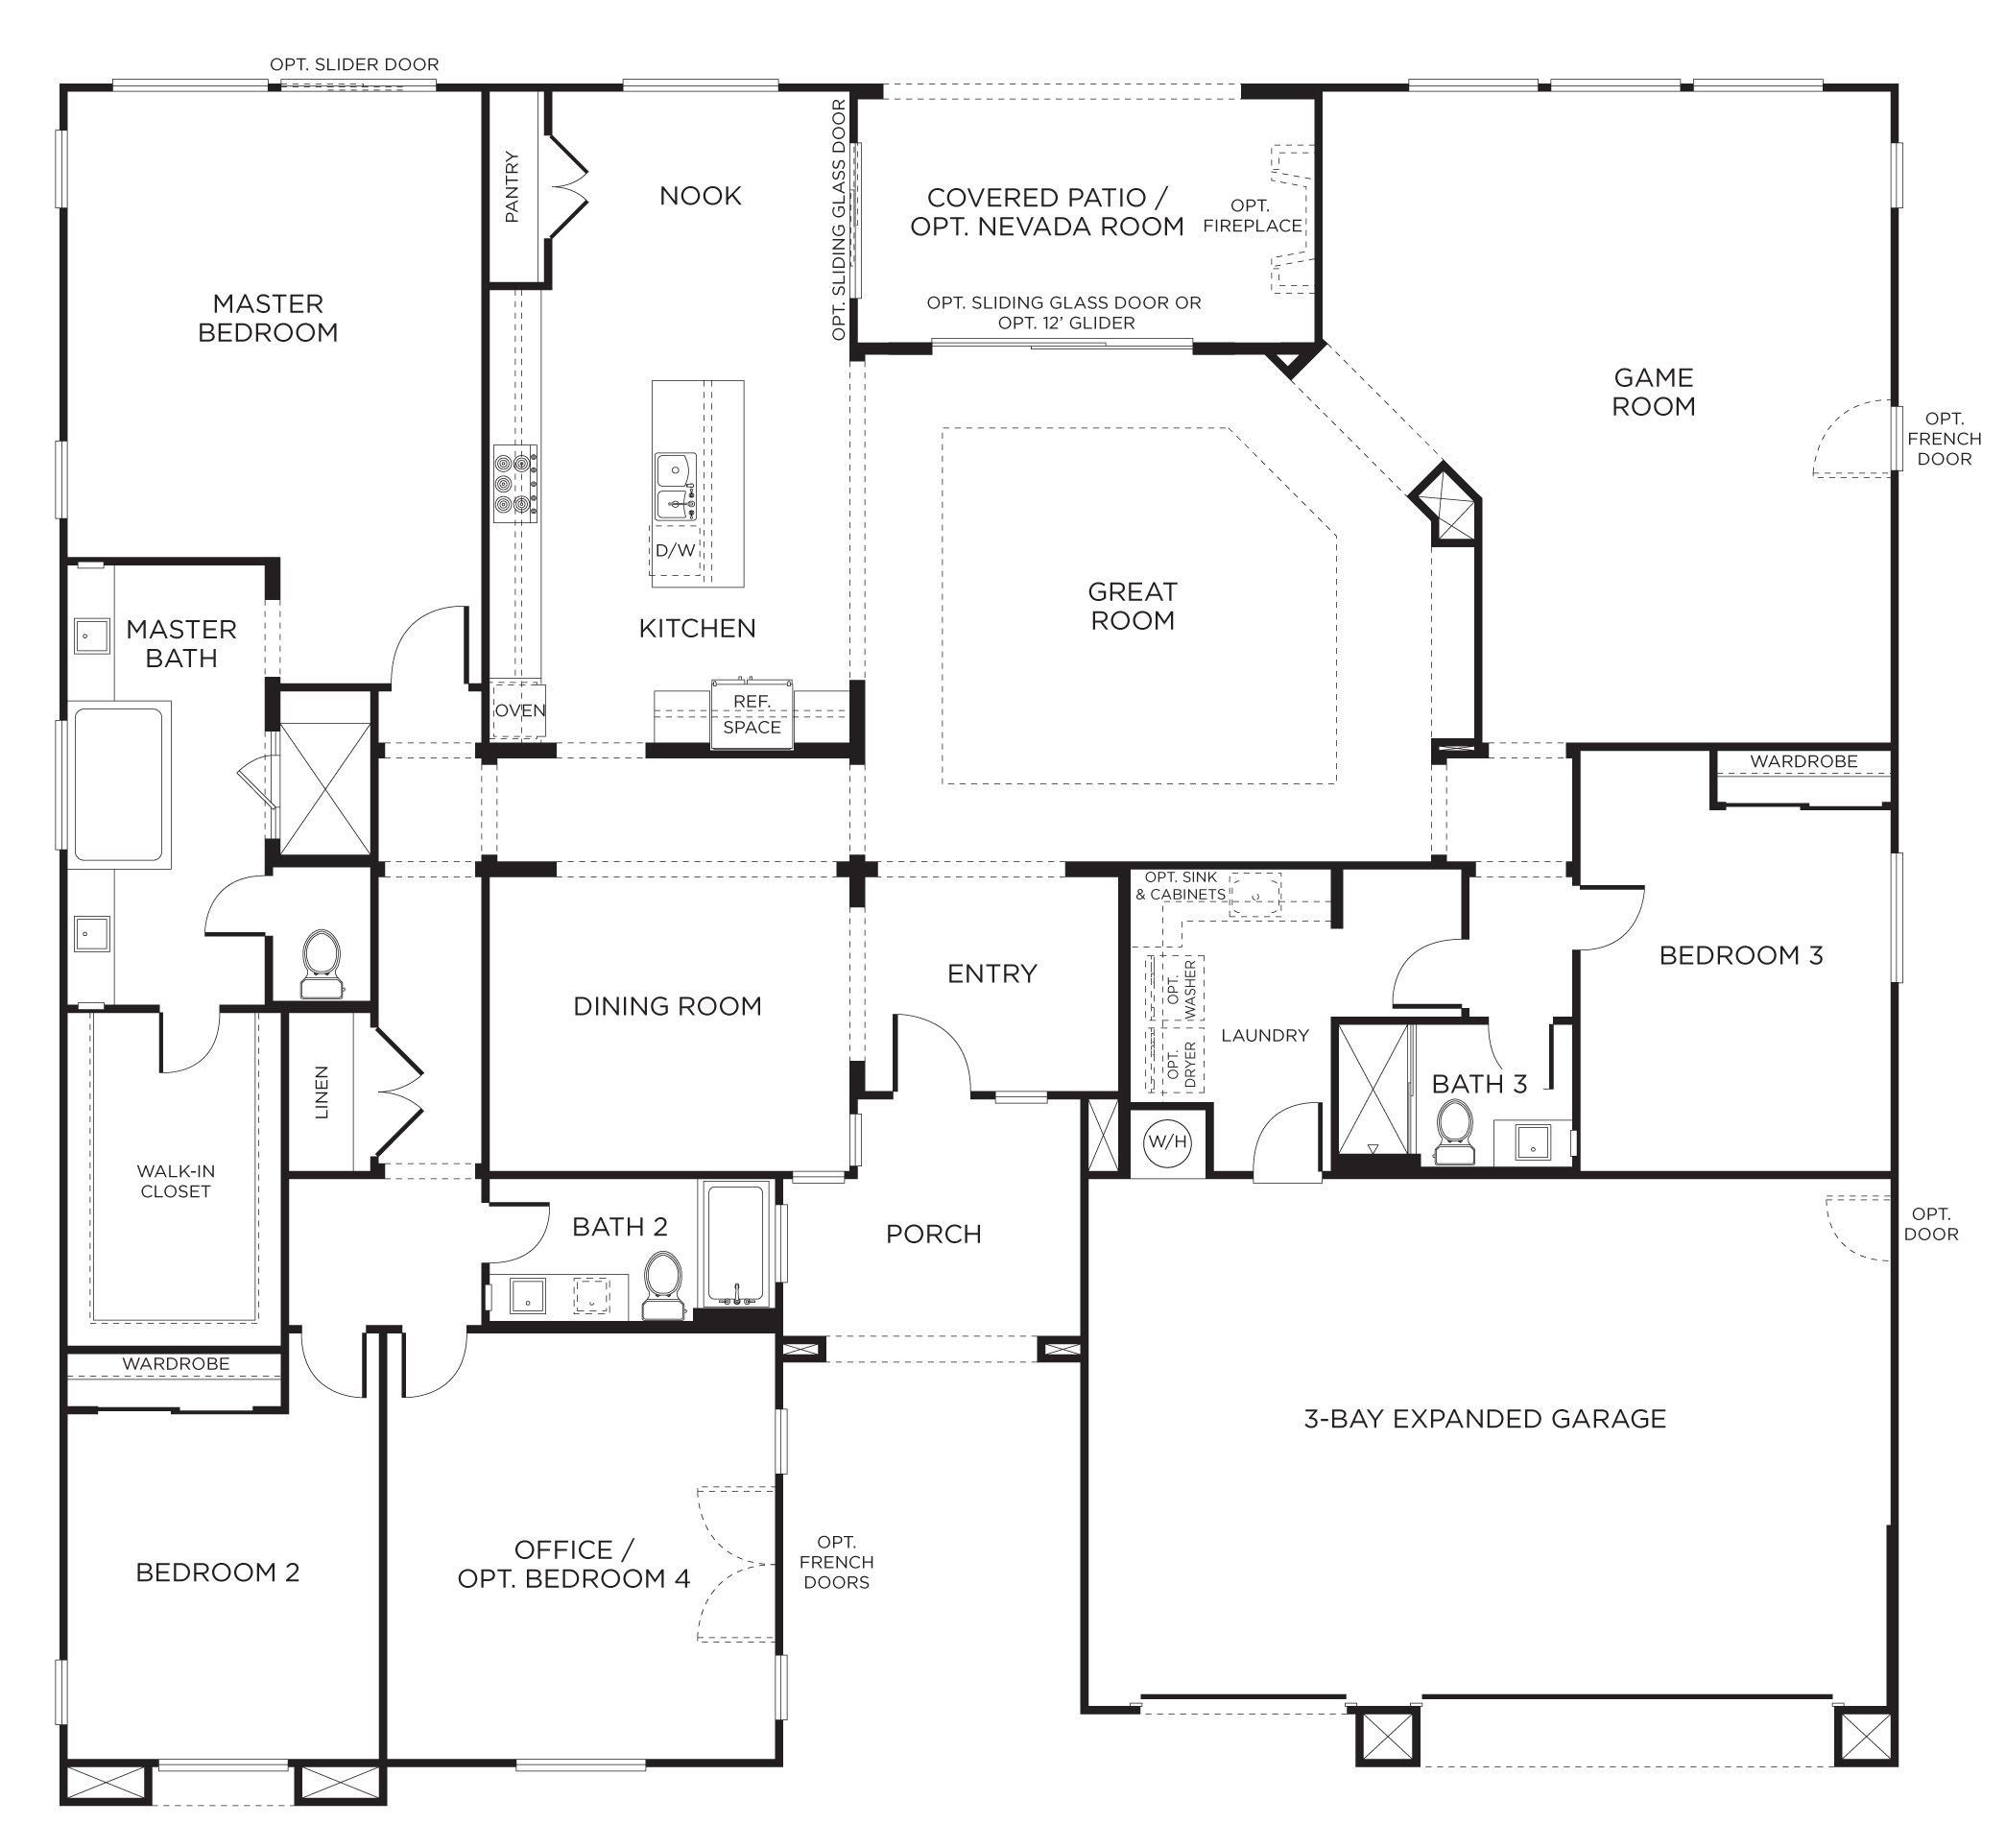 Floorplan 2 3 4 bedrooms 3 bathrooms 3400 square feet One story house designs